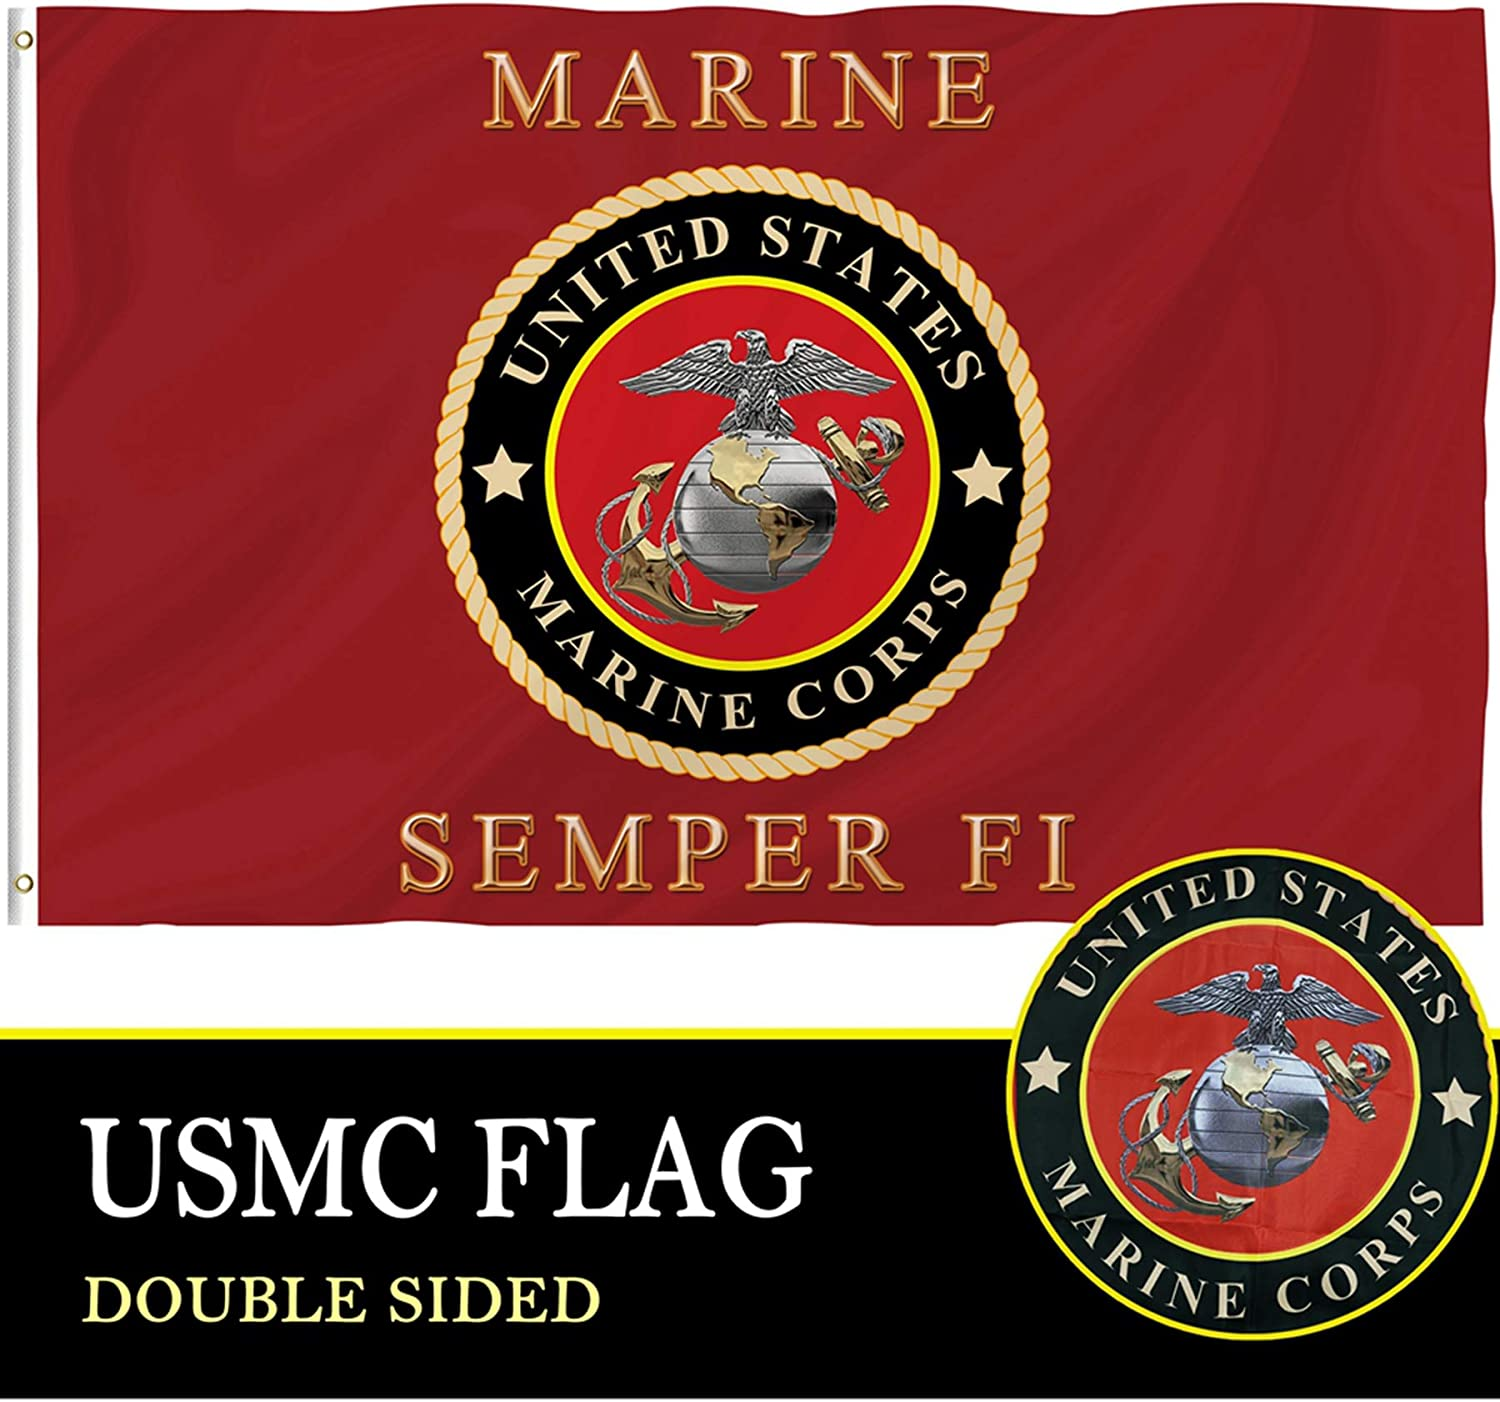 Bonsai Tree Marine Corps Flag 4x6 Ft, Double Sided and Double Stitched Polyester USMC Flags with Brass Grommets, American Military Marines Home Outdoor Banners Decorations Gifts